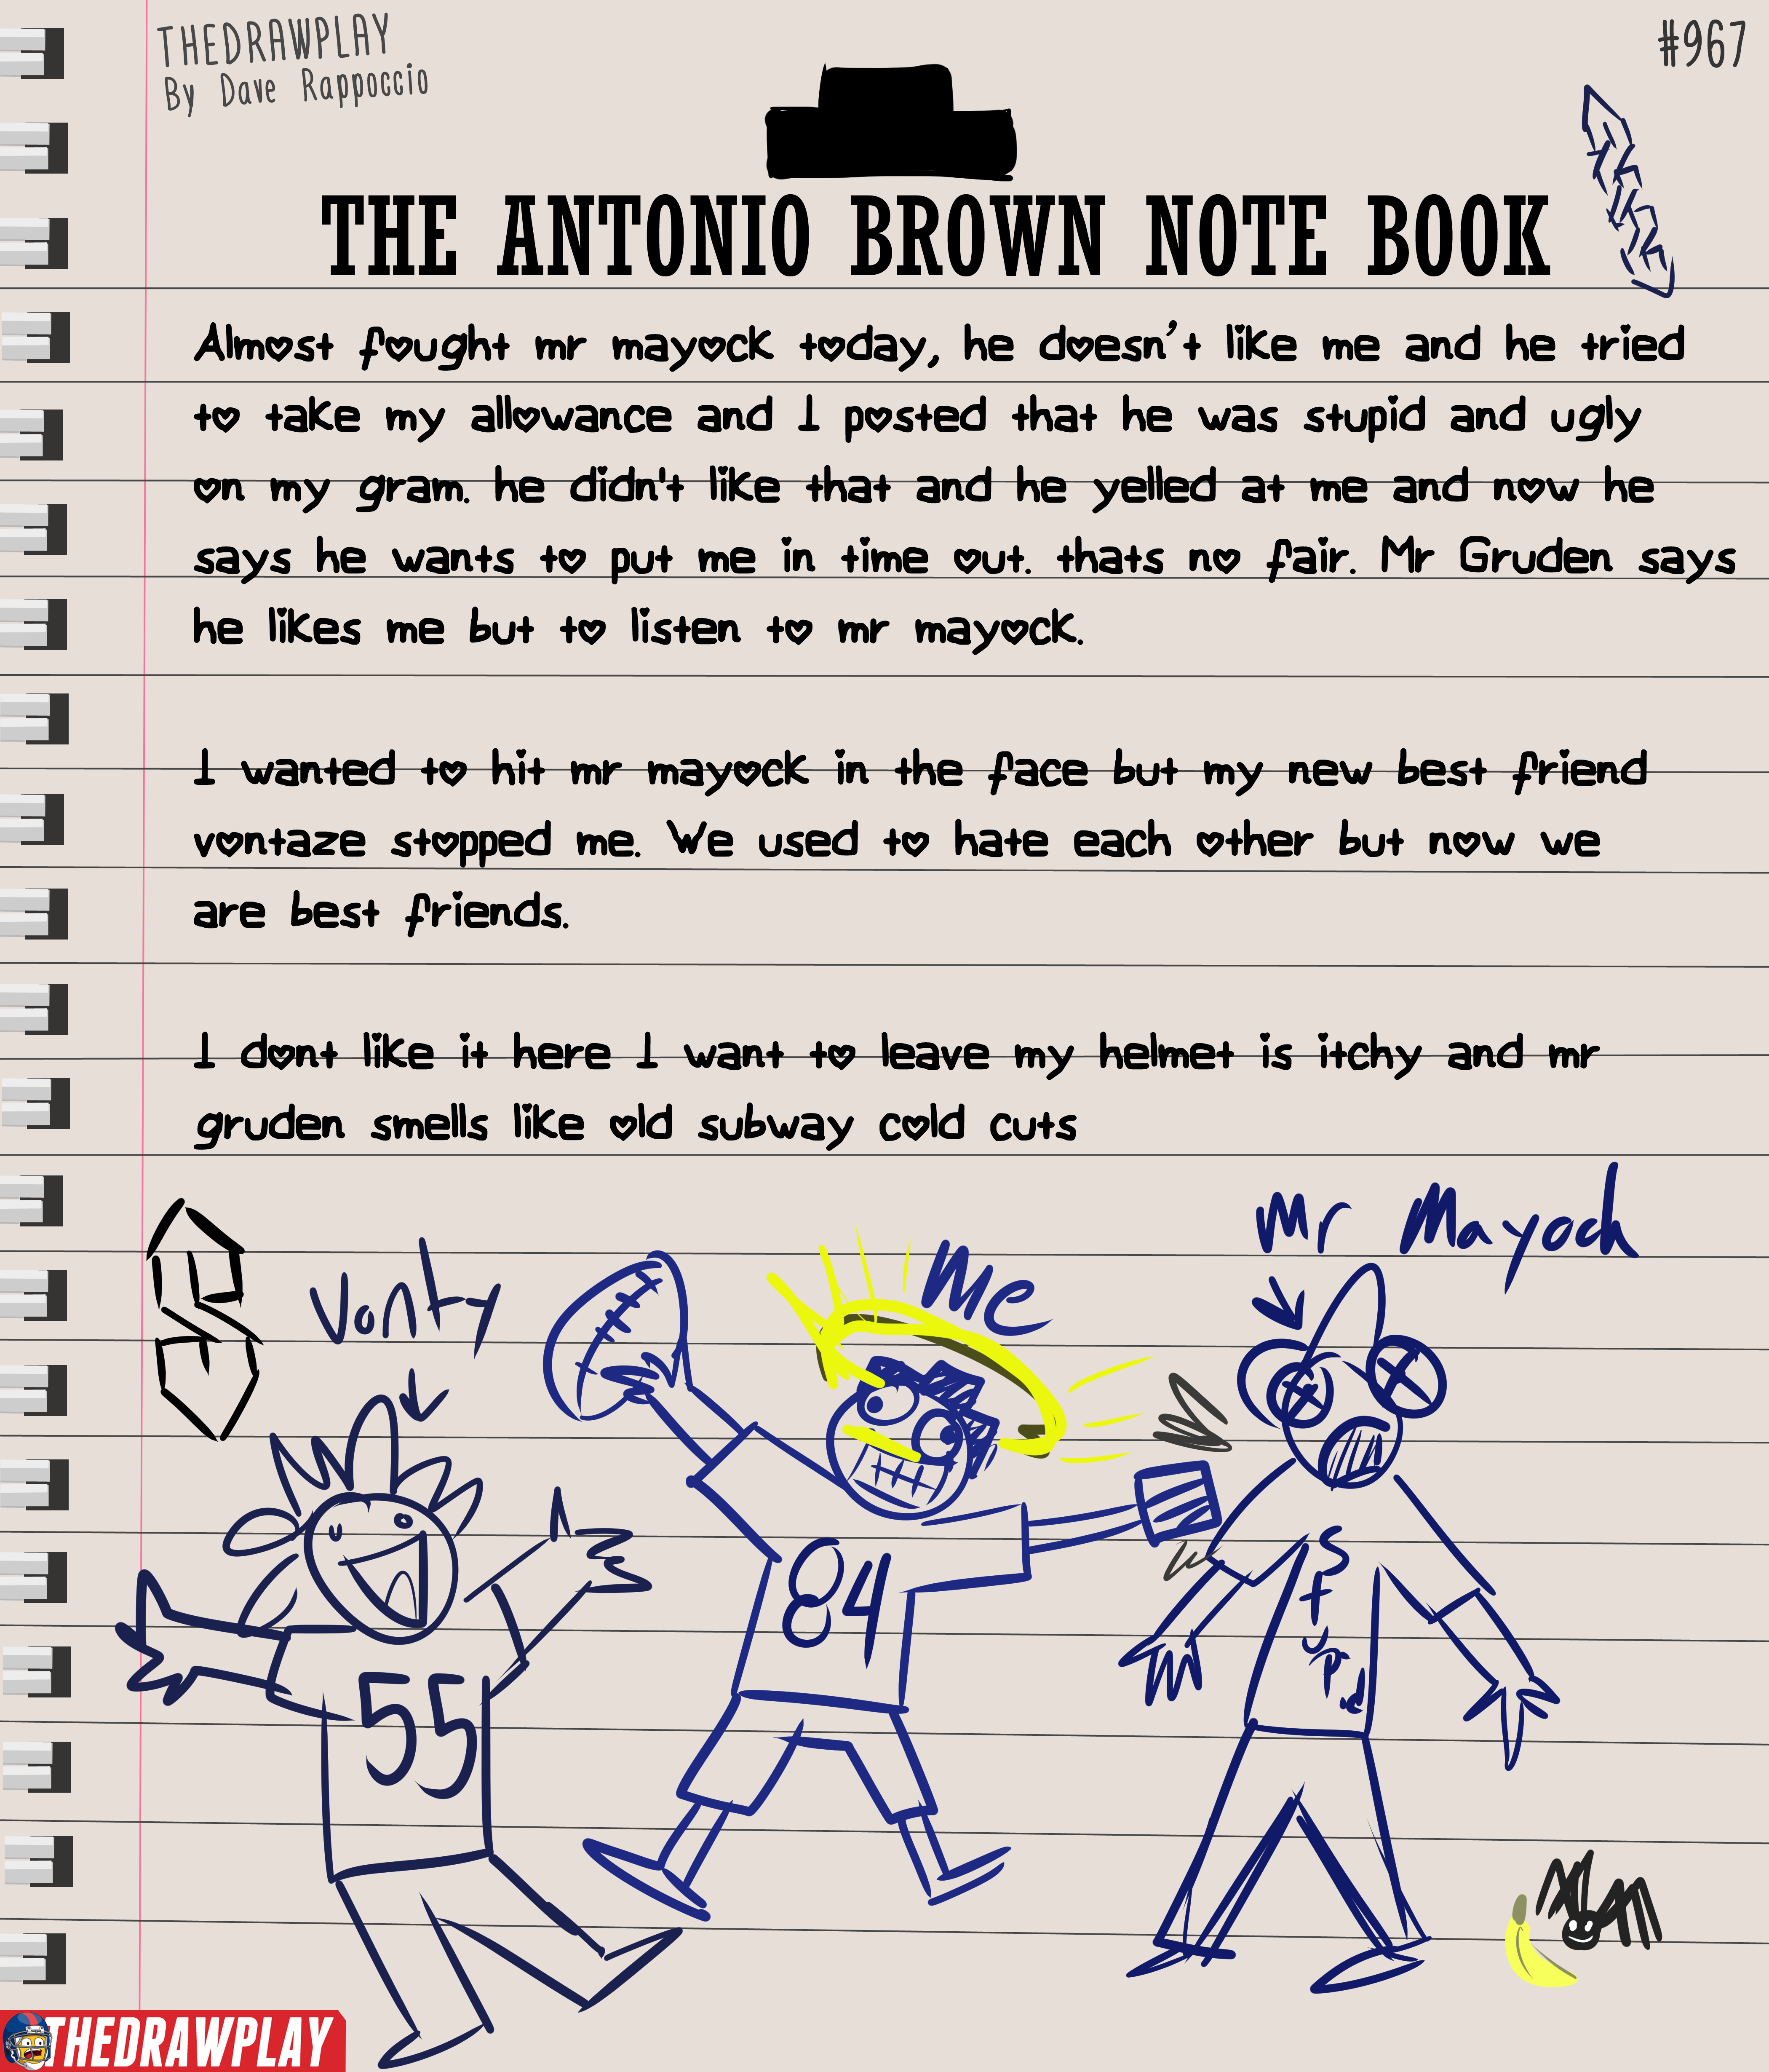 IMAGE(http://www.thedrawplay.com/wp-content/uploads/2019/09/2019-09-06-AntonioBrownNote.png)